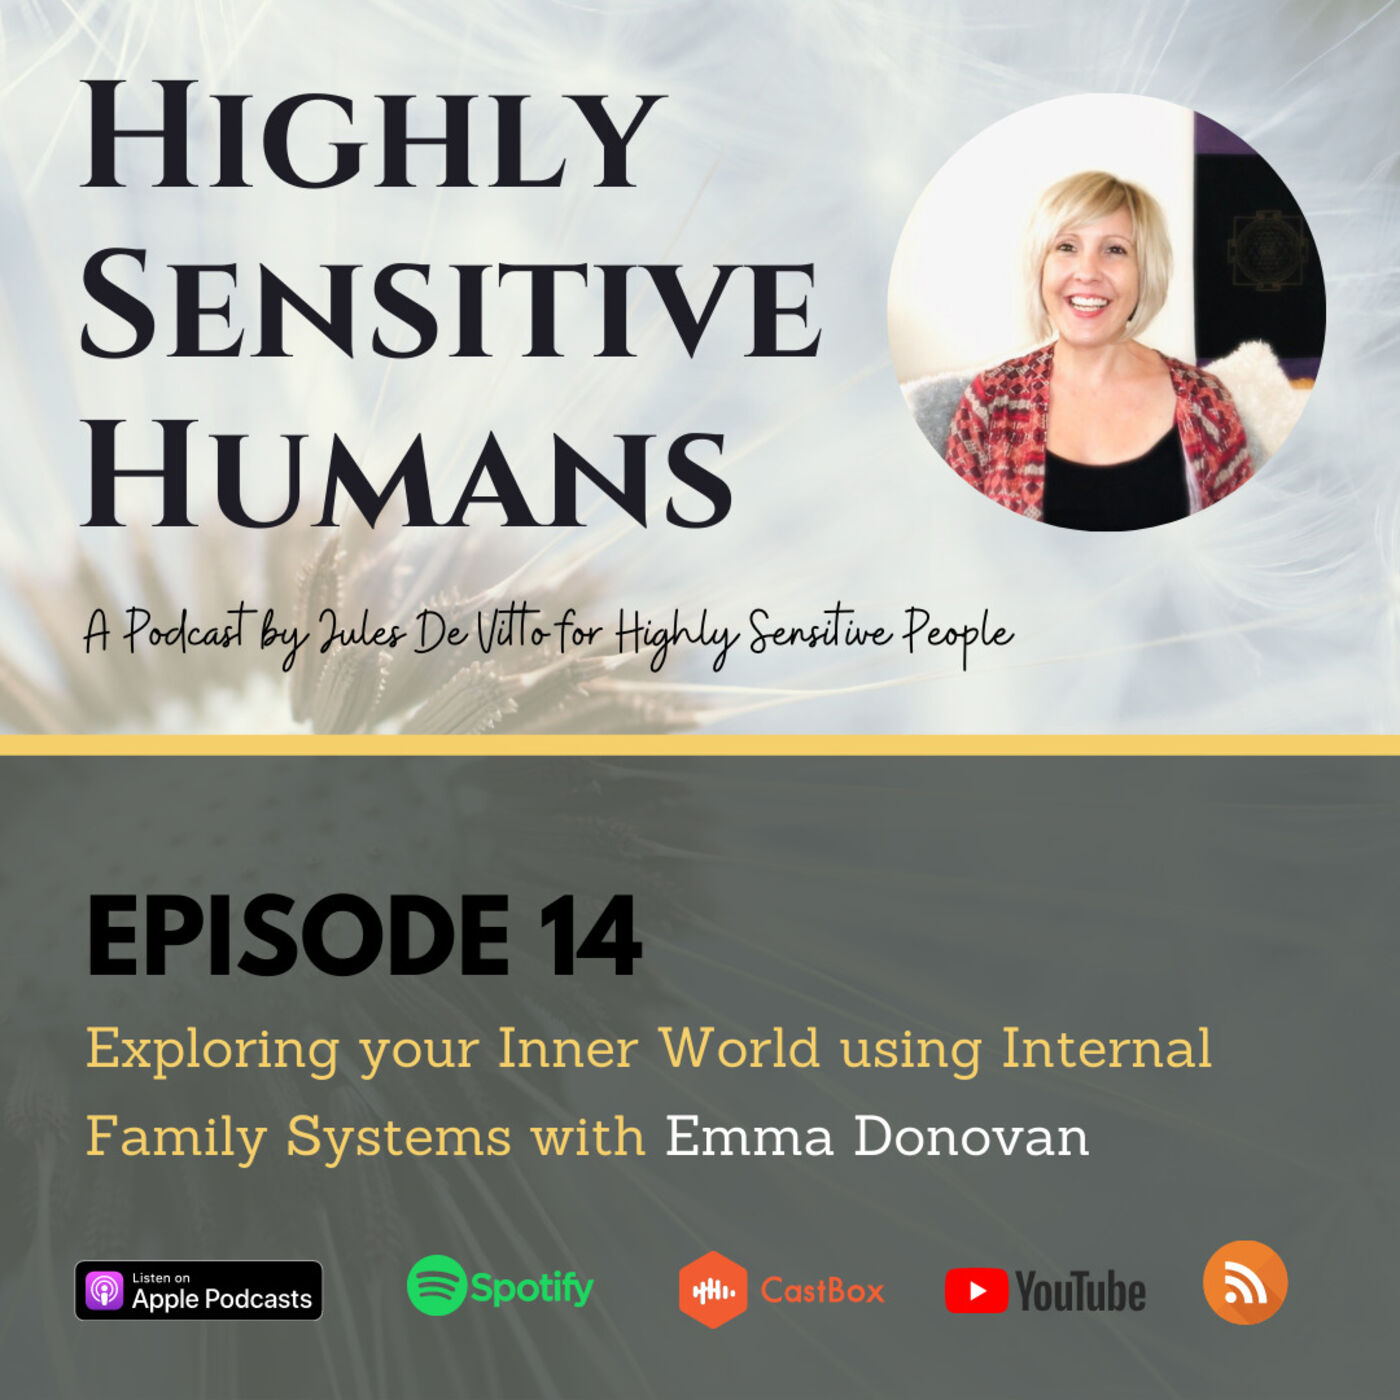 Exploring your Inner World using Internal Family Systems